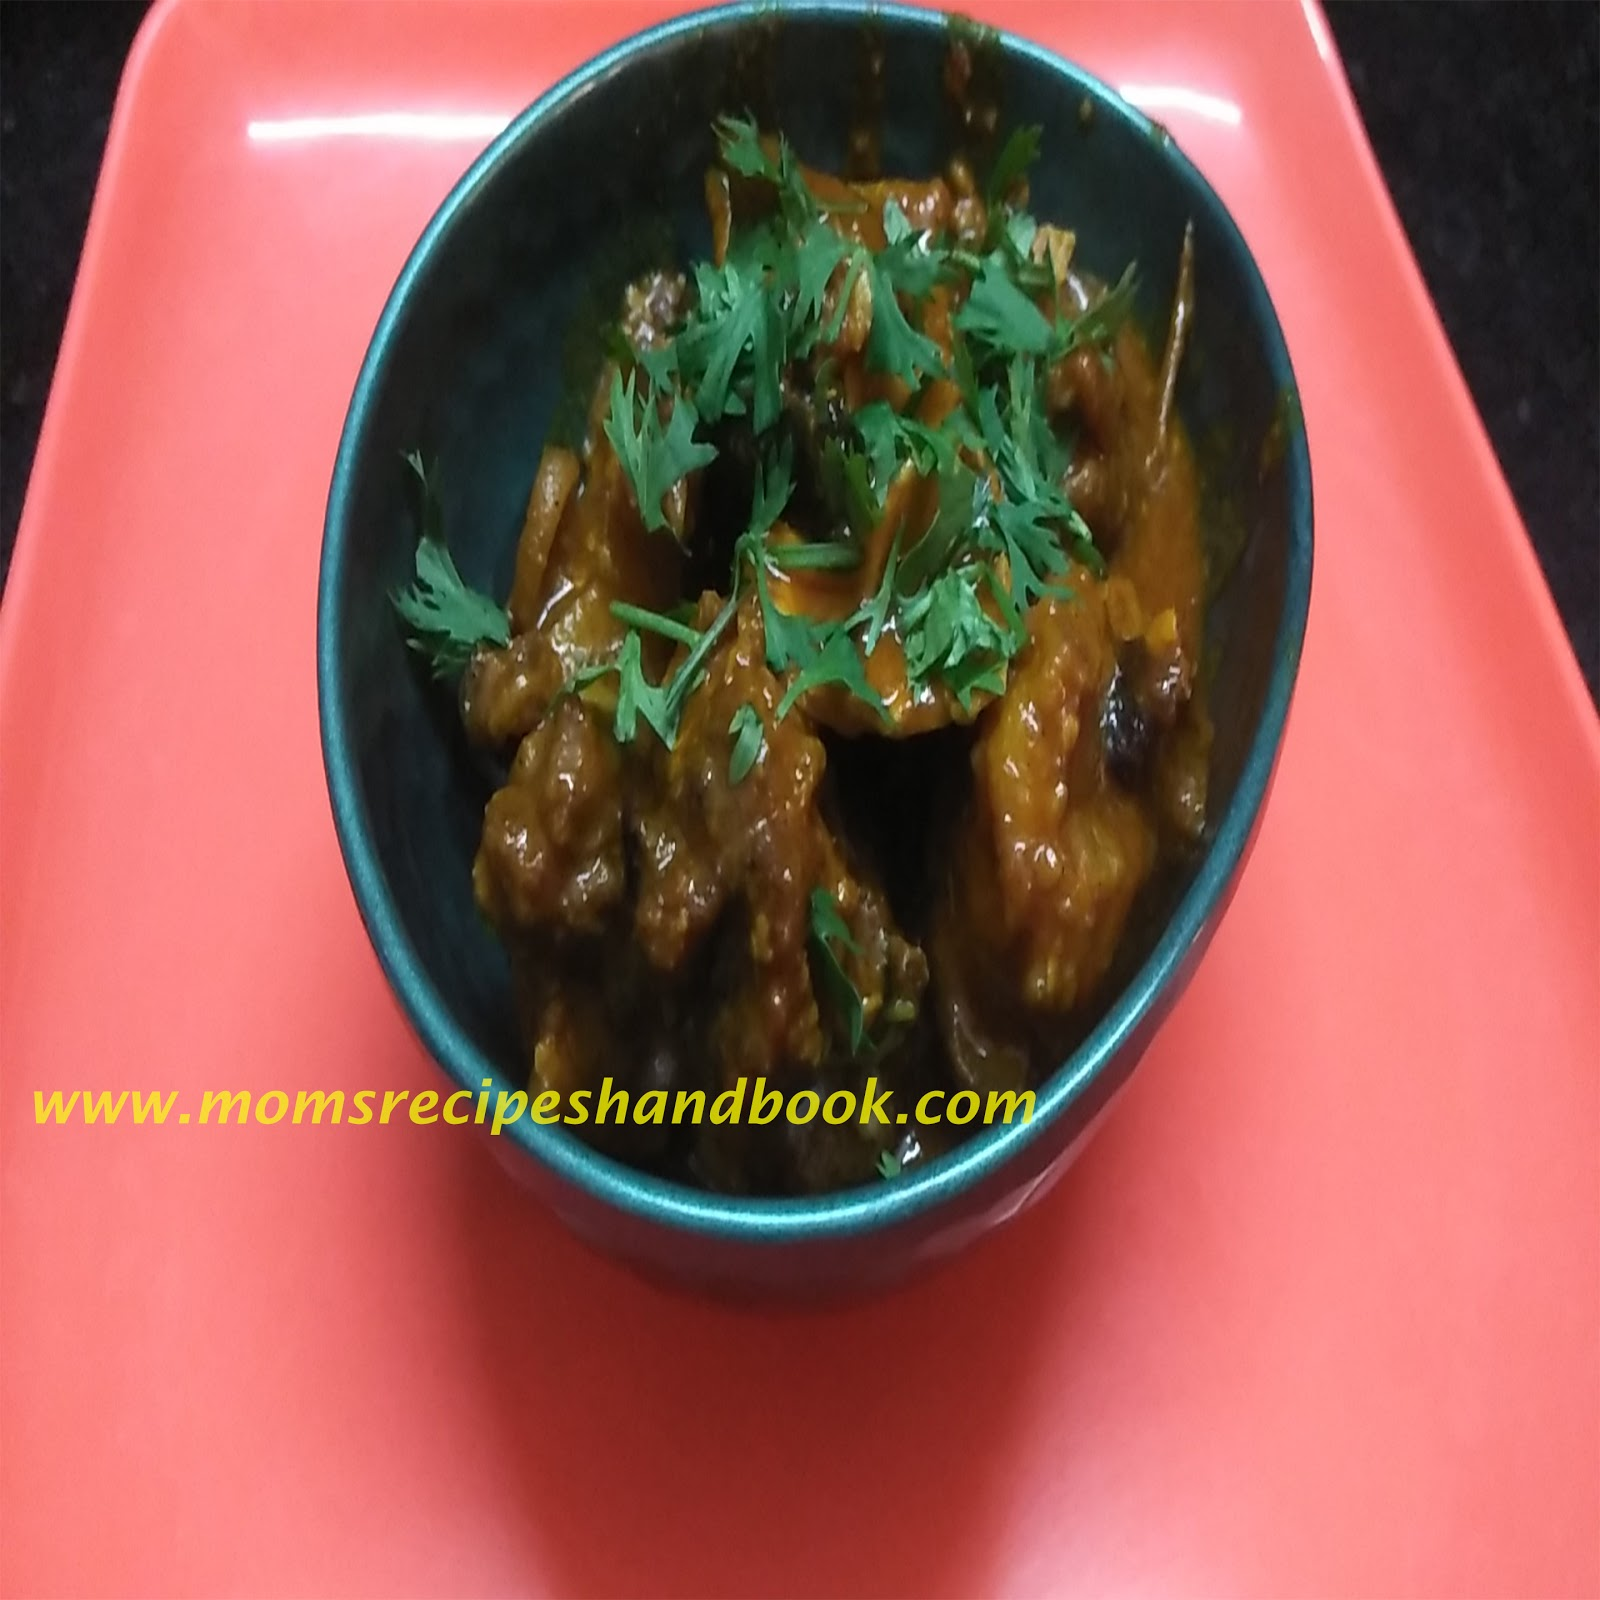 Andhra Style Goat Head Meat Gravy Recipe How to Prepare